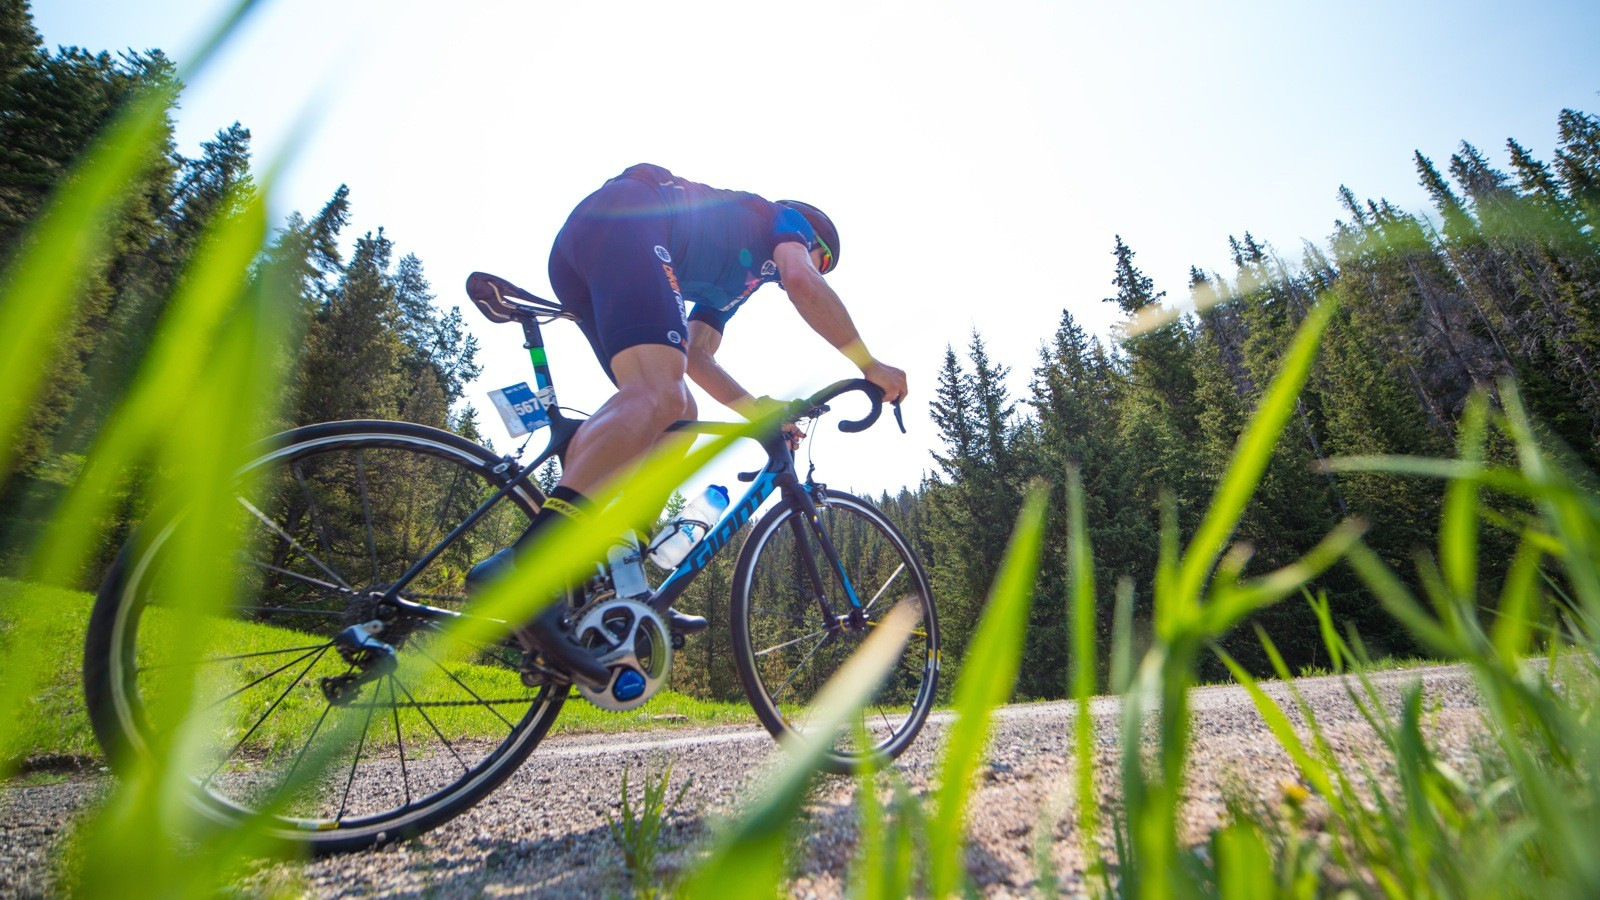 Two critical things for Mavic Haute Route Rockies: low gearing and quality tires